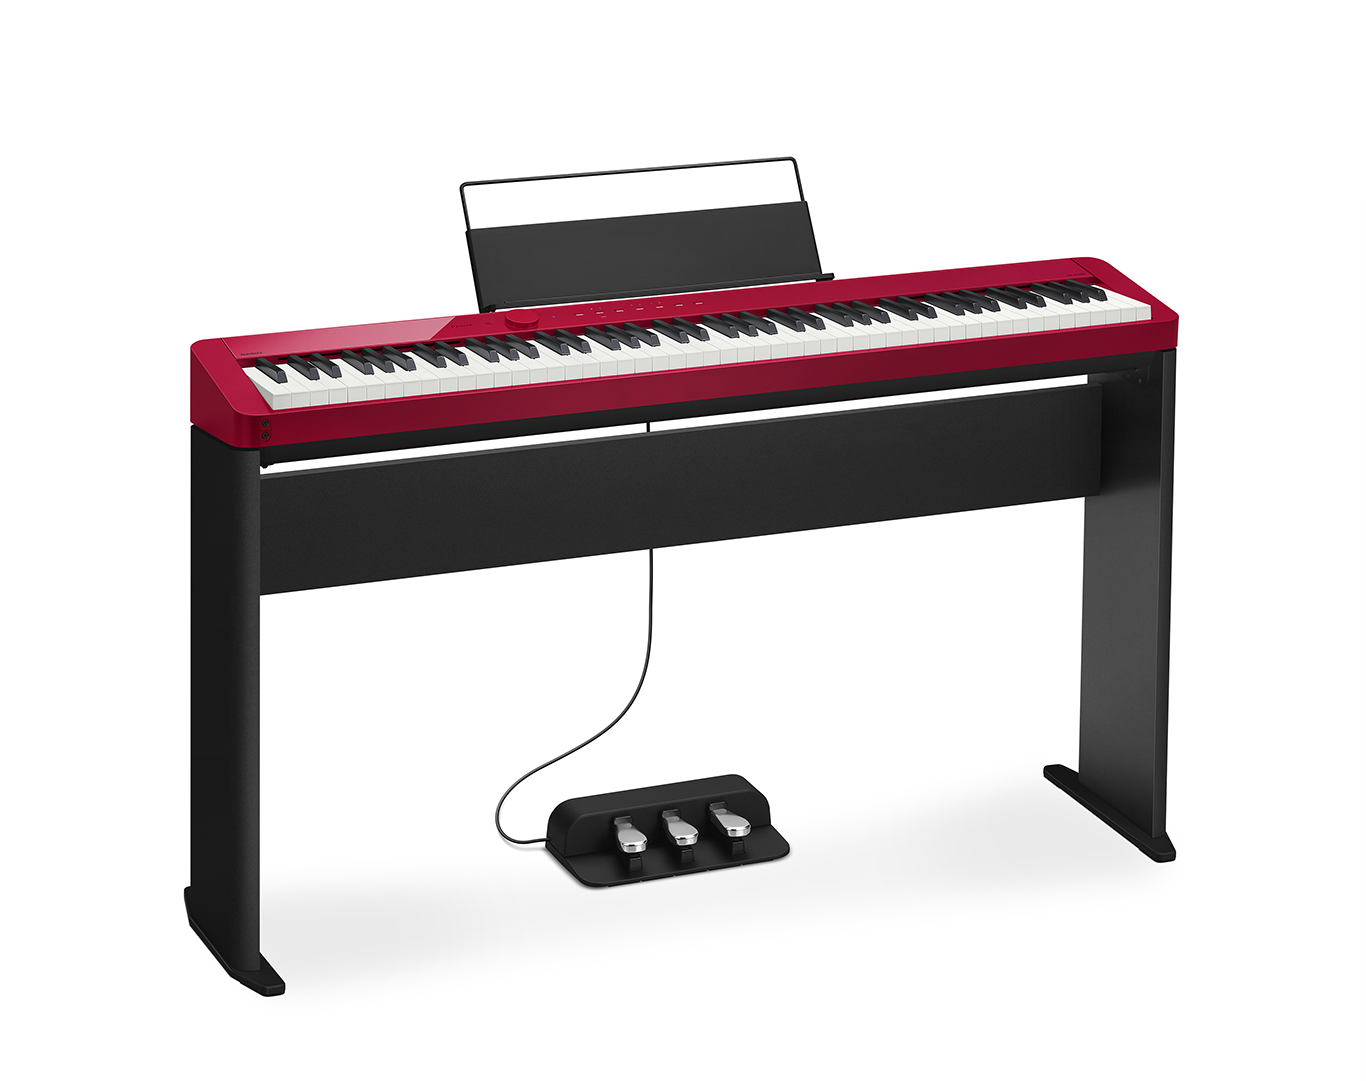 shown with optional cs-68 stand and sp-34 three pedal unit.